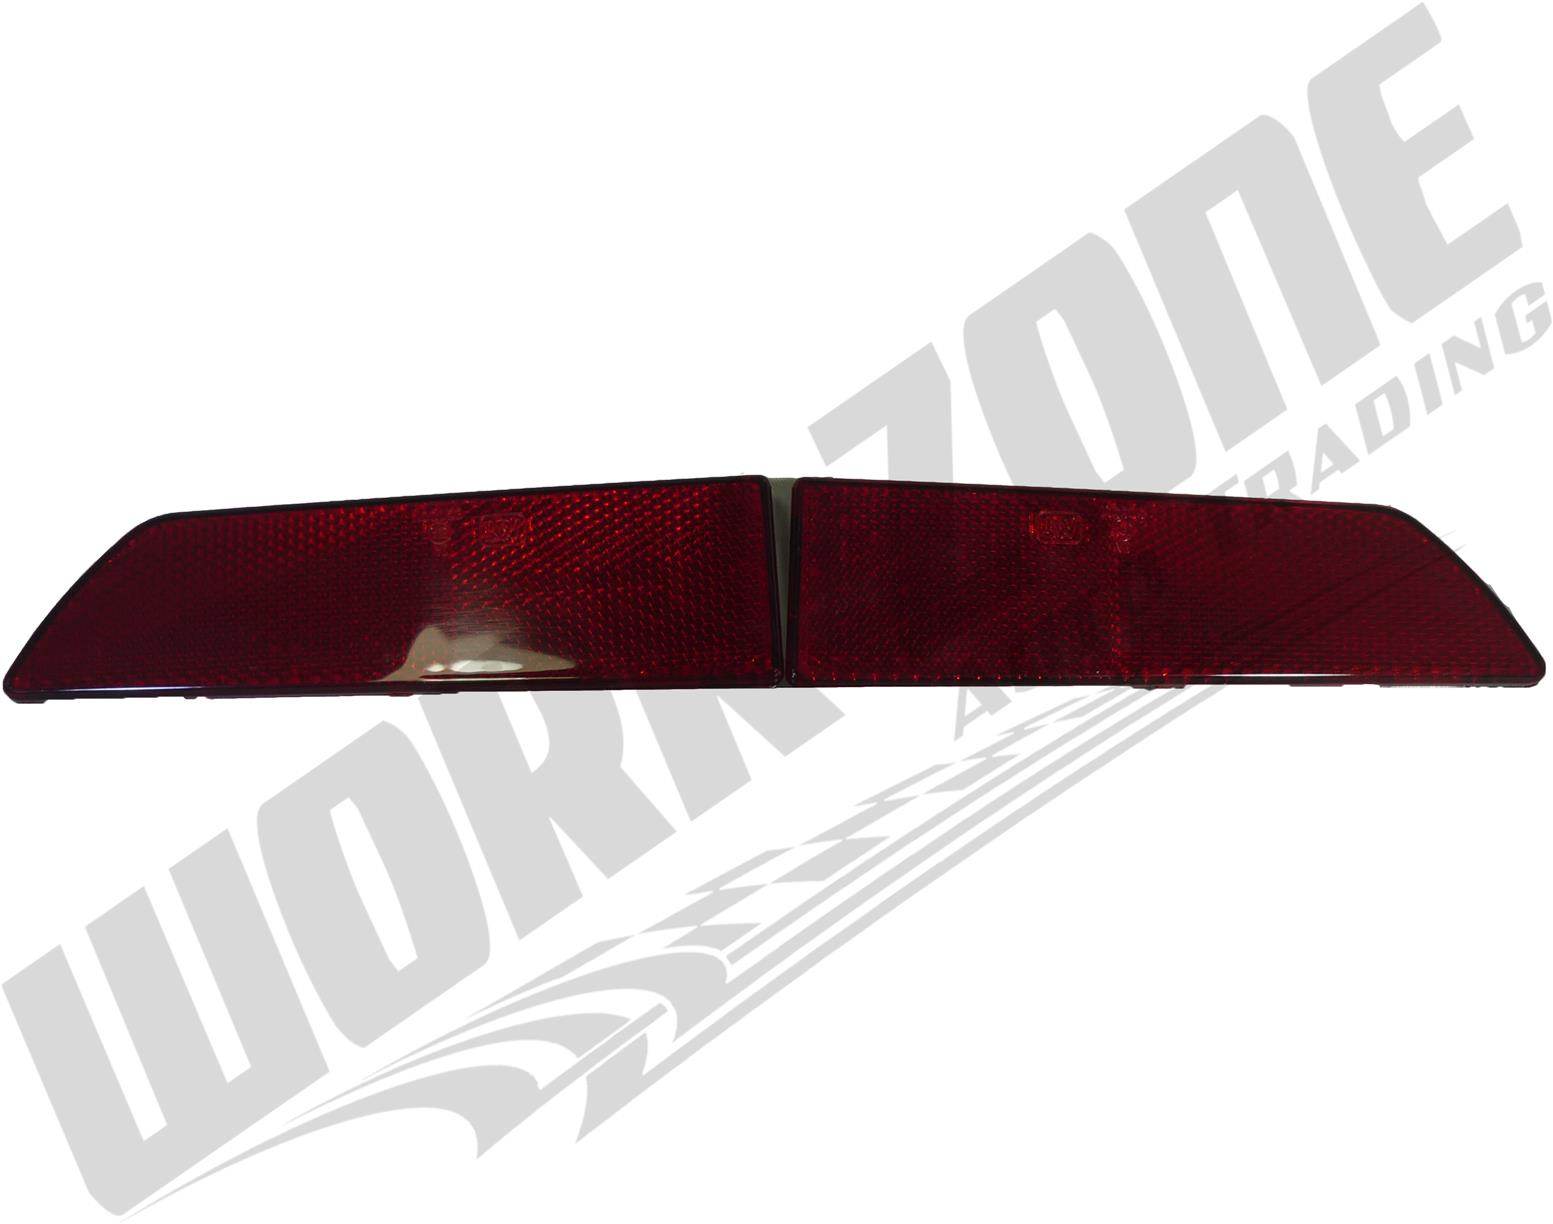 GENUINE PERODUA MYVI 2005 ORIGINAL REAR BUMPER REFLECTOR SET